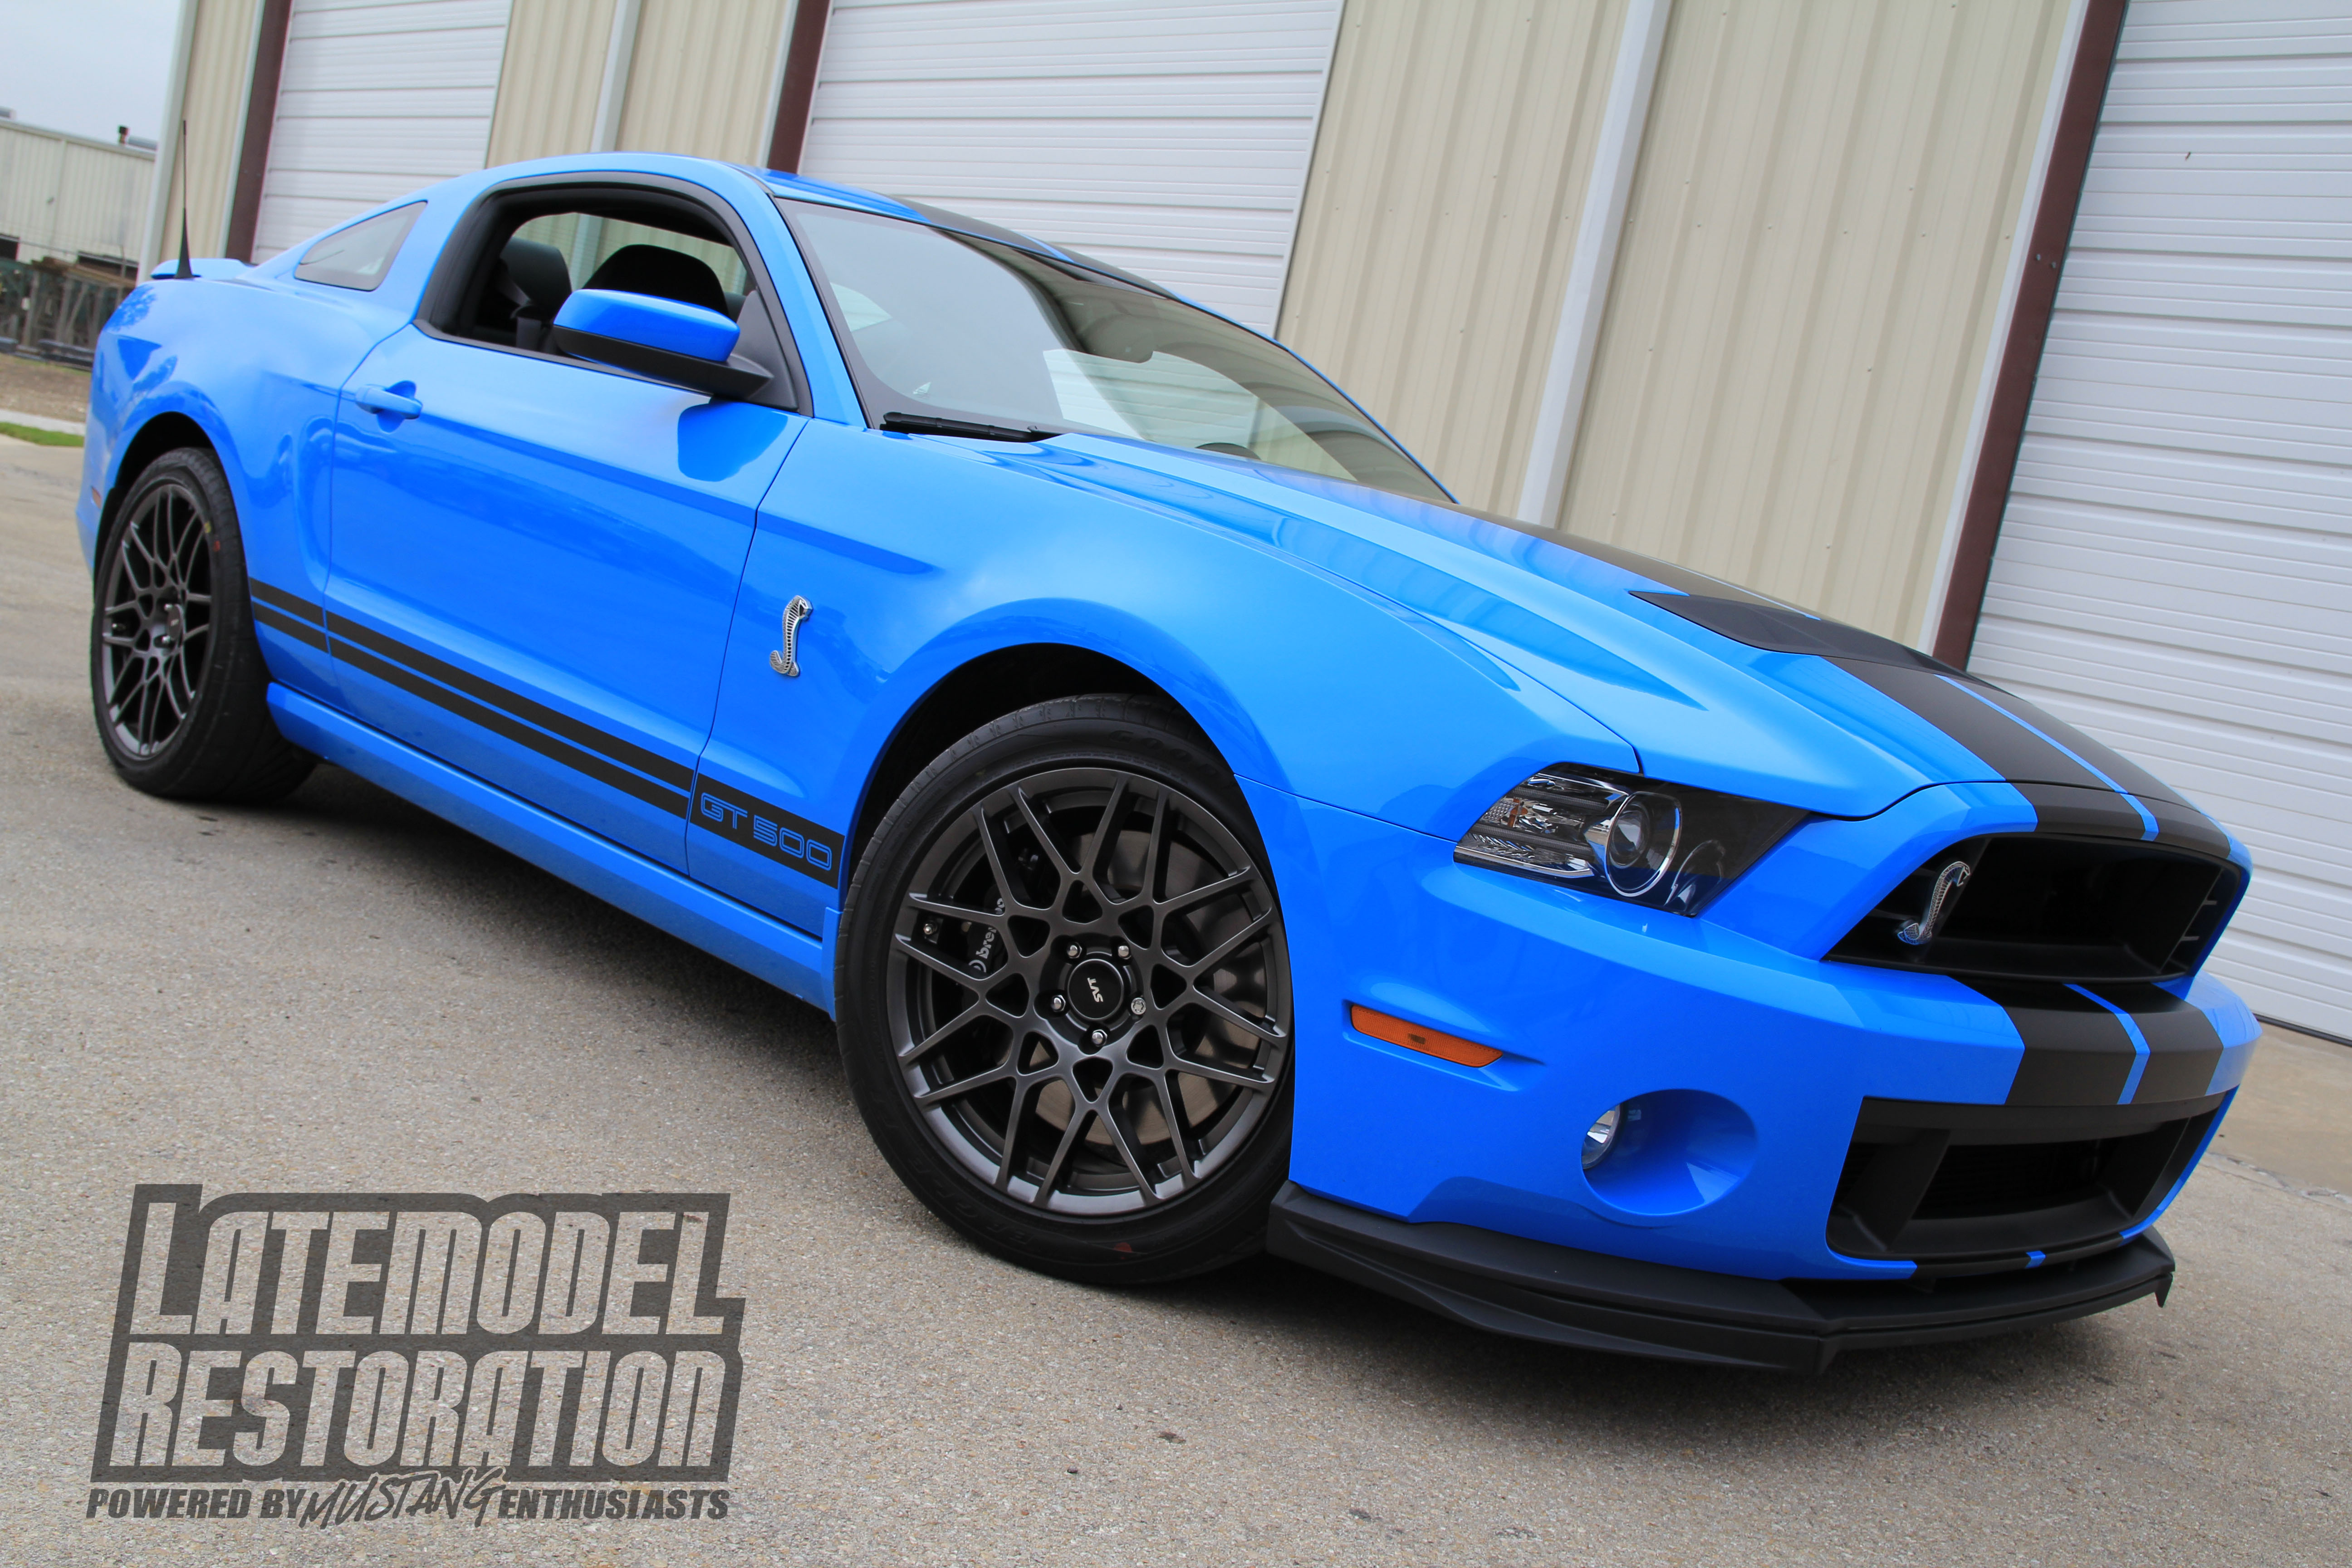 Top 10 Fastest Production Mustangs - 2013 Shelby GT500 Mustang